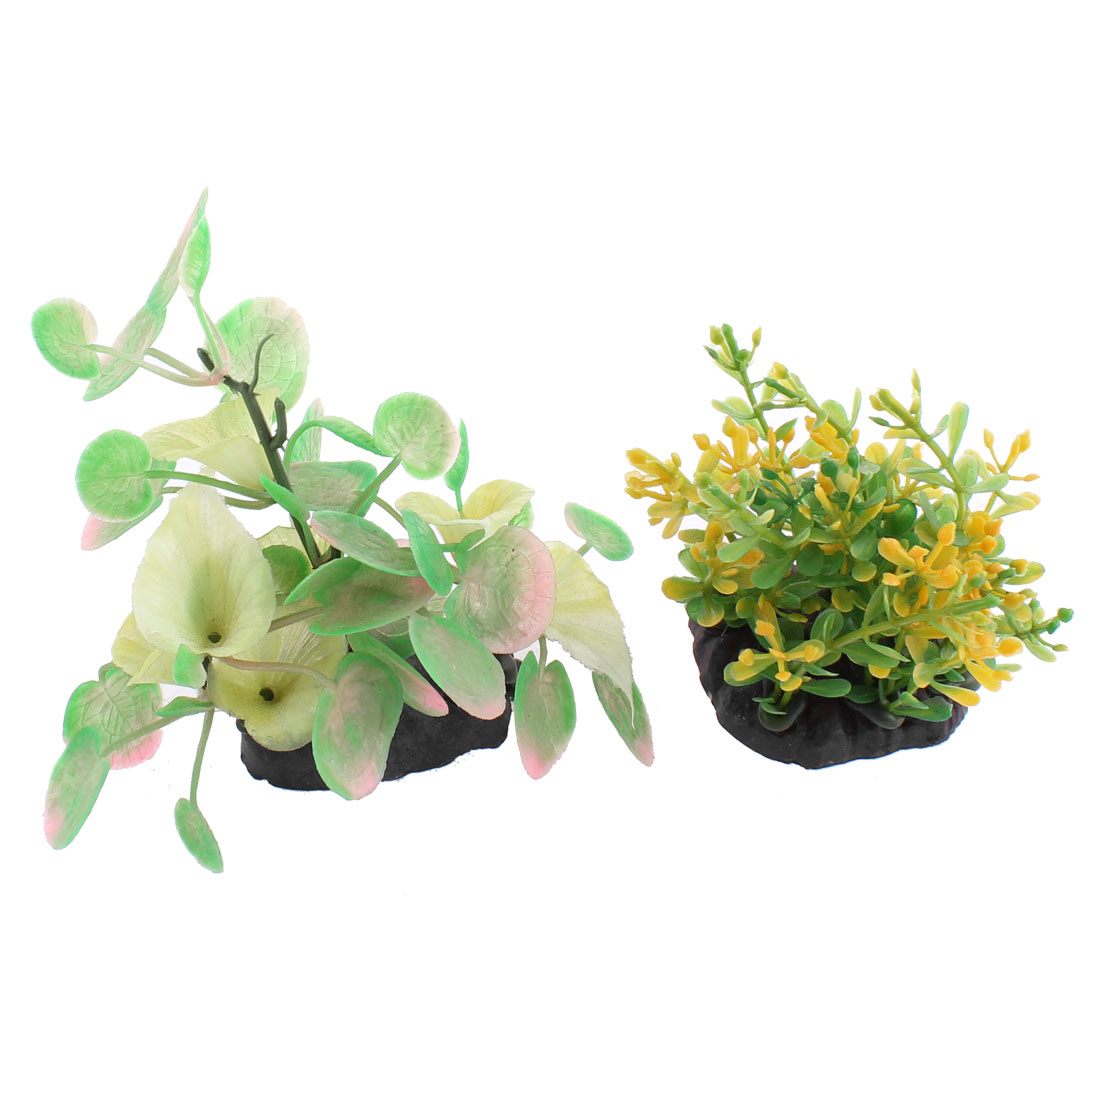 Fish Tank Plastic Emulational Water Plant Decoration 2 in 1